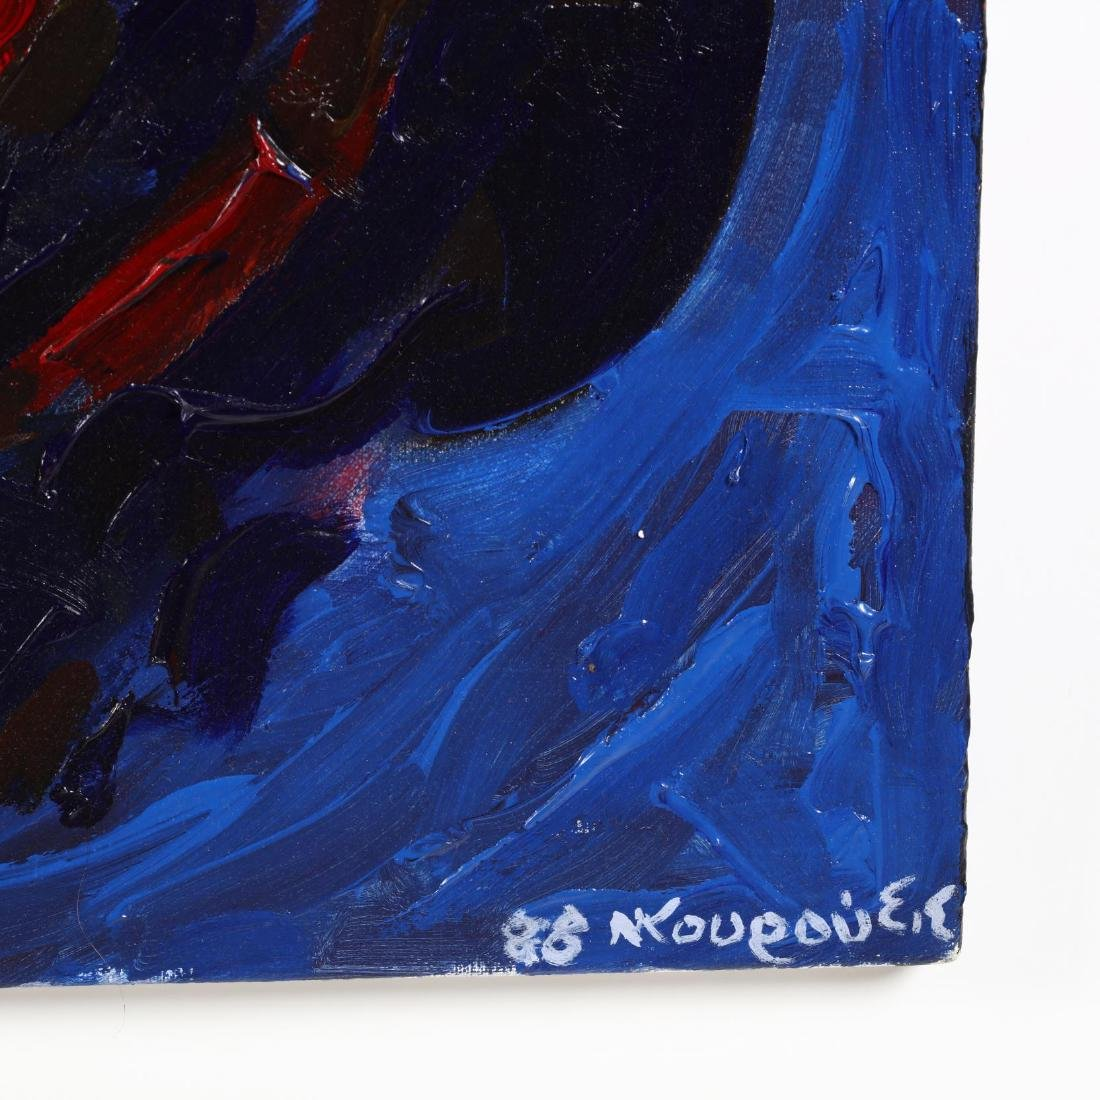 Greek or Cypriot Modernist Abstract Painting - 2